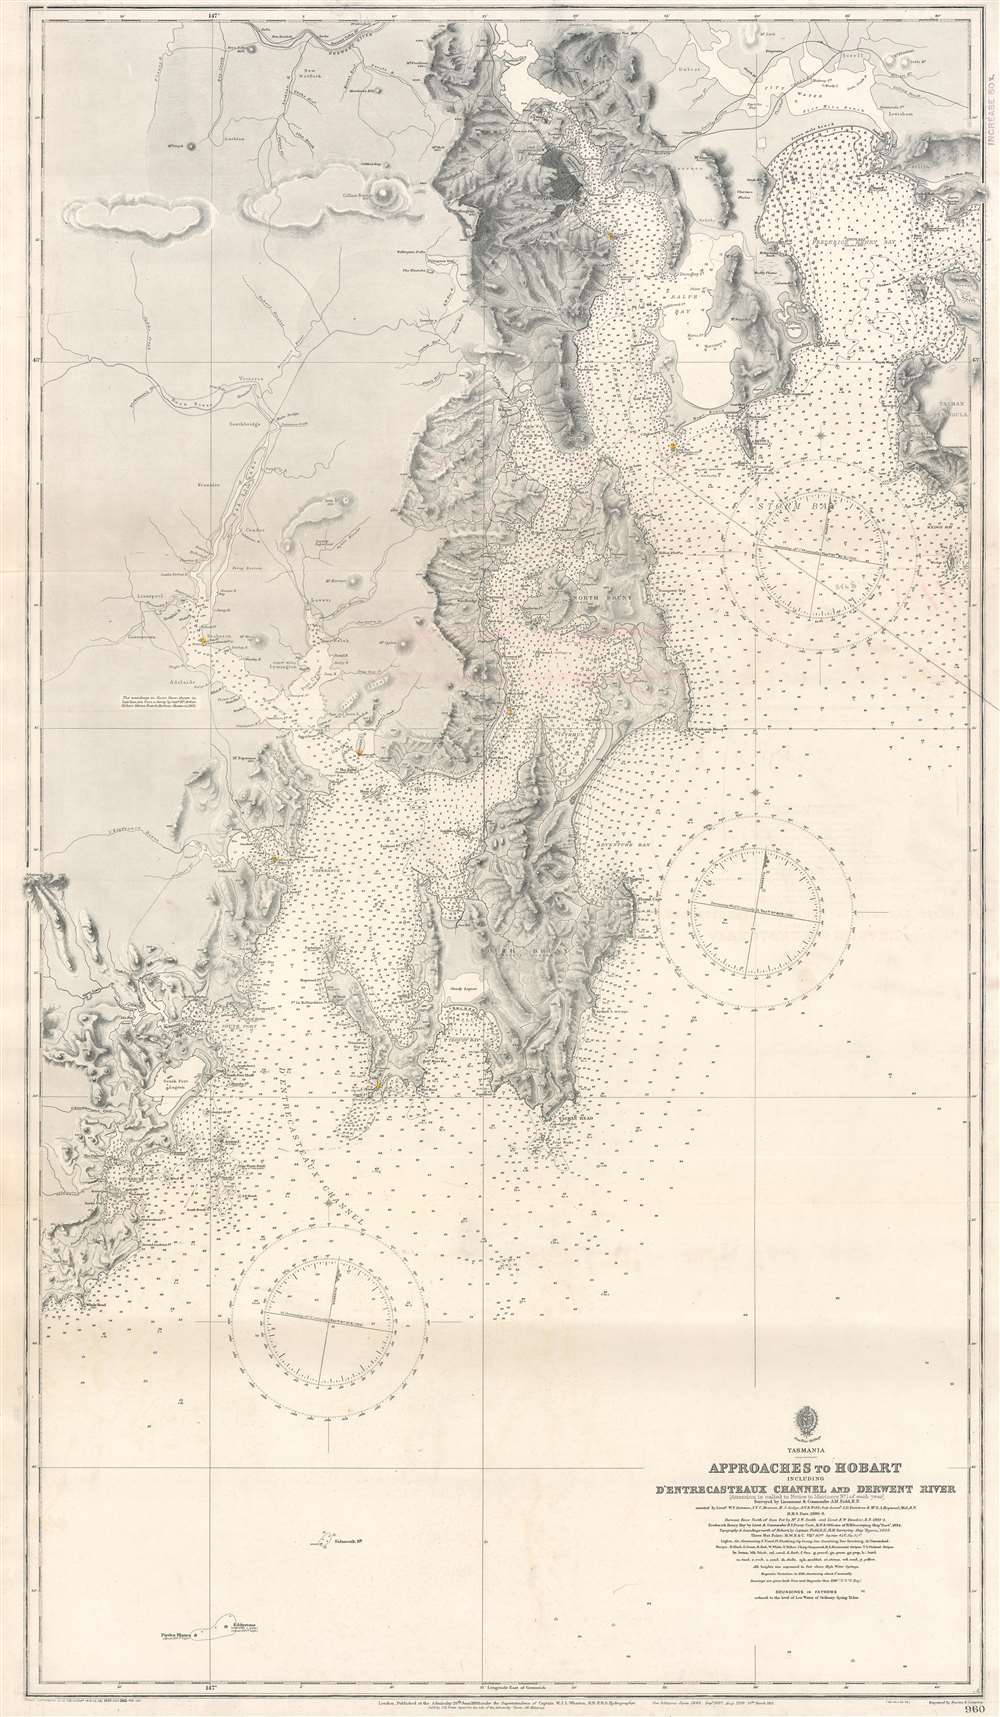 Approaches to Hobart Including D'Entrecasteaux Channel and Derwent River. - Main View